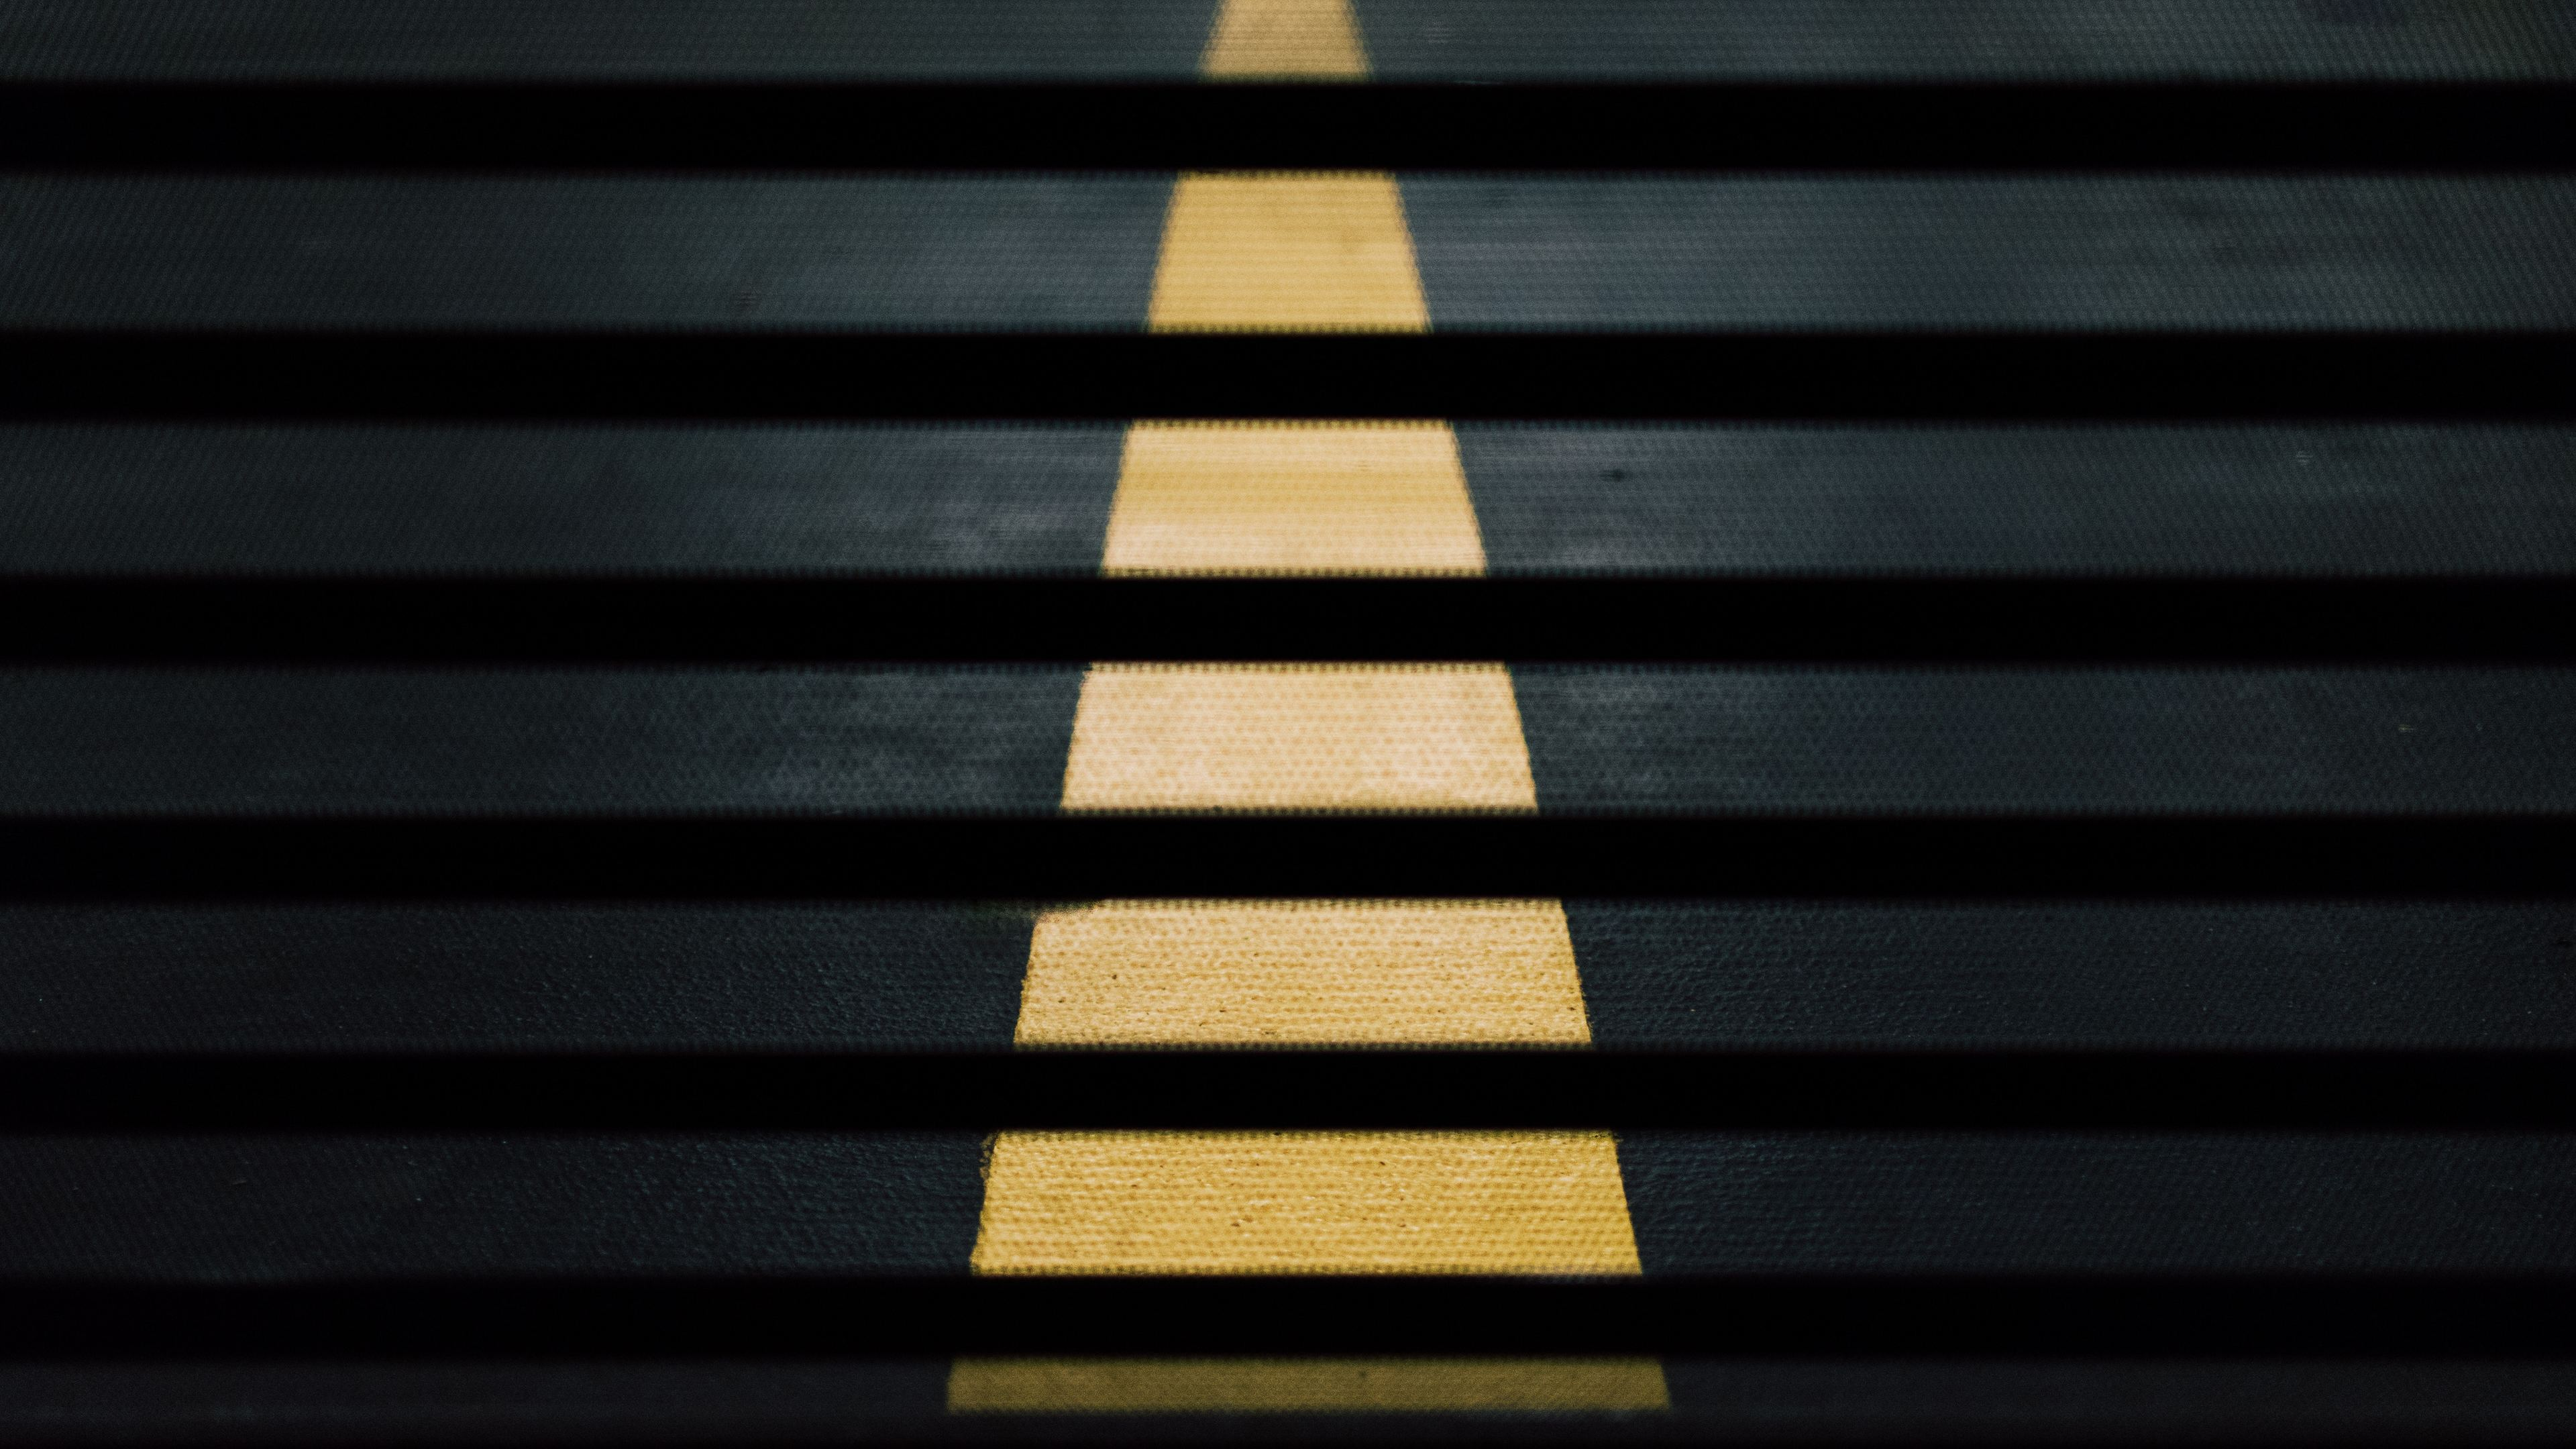 road street crossing yellow lines abstract 5k 1539371297 - Road Street Crossing Yellow Lines Abstract 5k - street wallpapers, road wallpapers, lines wallpapers, hd-wallpapers, abstract wallpapers, 5k wallpapers, 4k-wallpapers